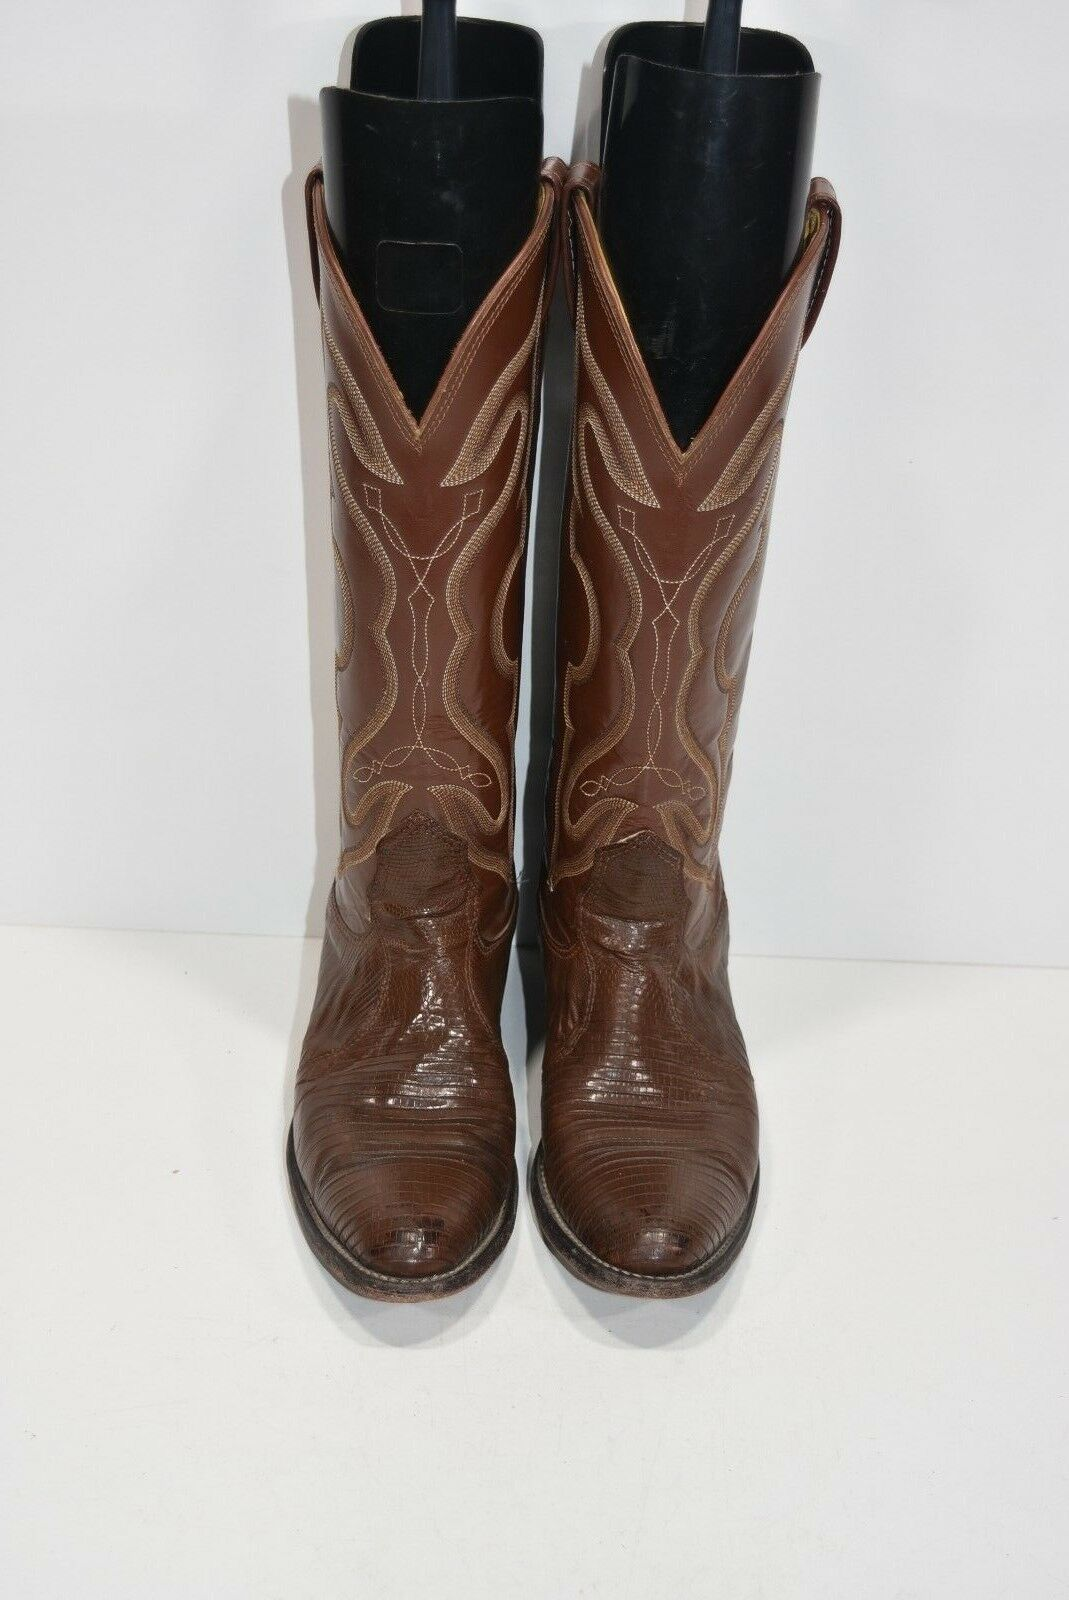 NOCONA Damenschuhe Damenschuhe Damenschuhe 5.5 A TEJU LIZARD BROWN LEATHER CLASSIC COWBOY Stiefel ROPERS 0aaede